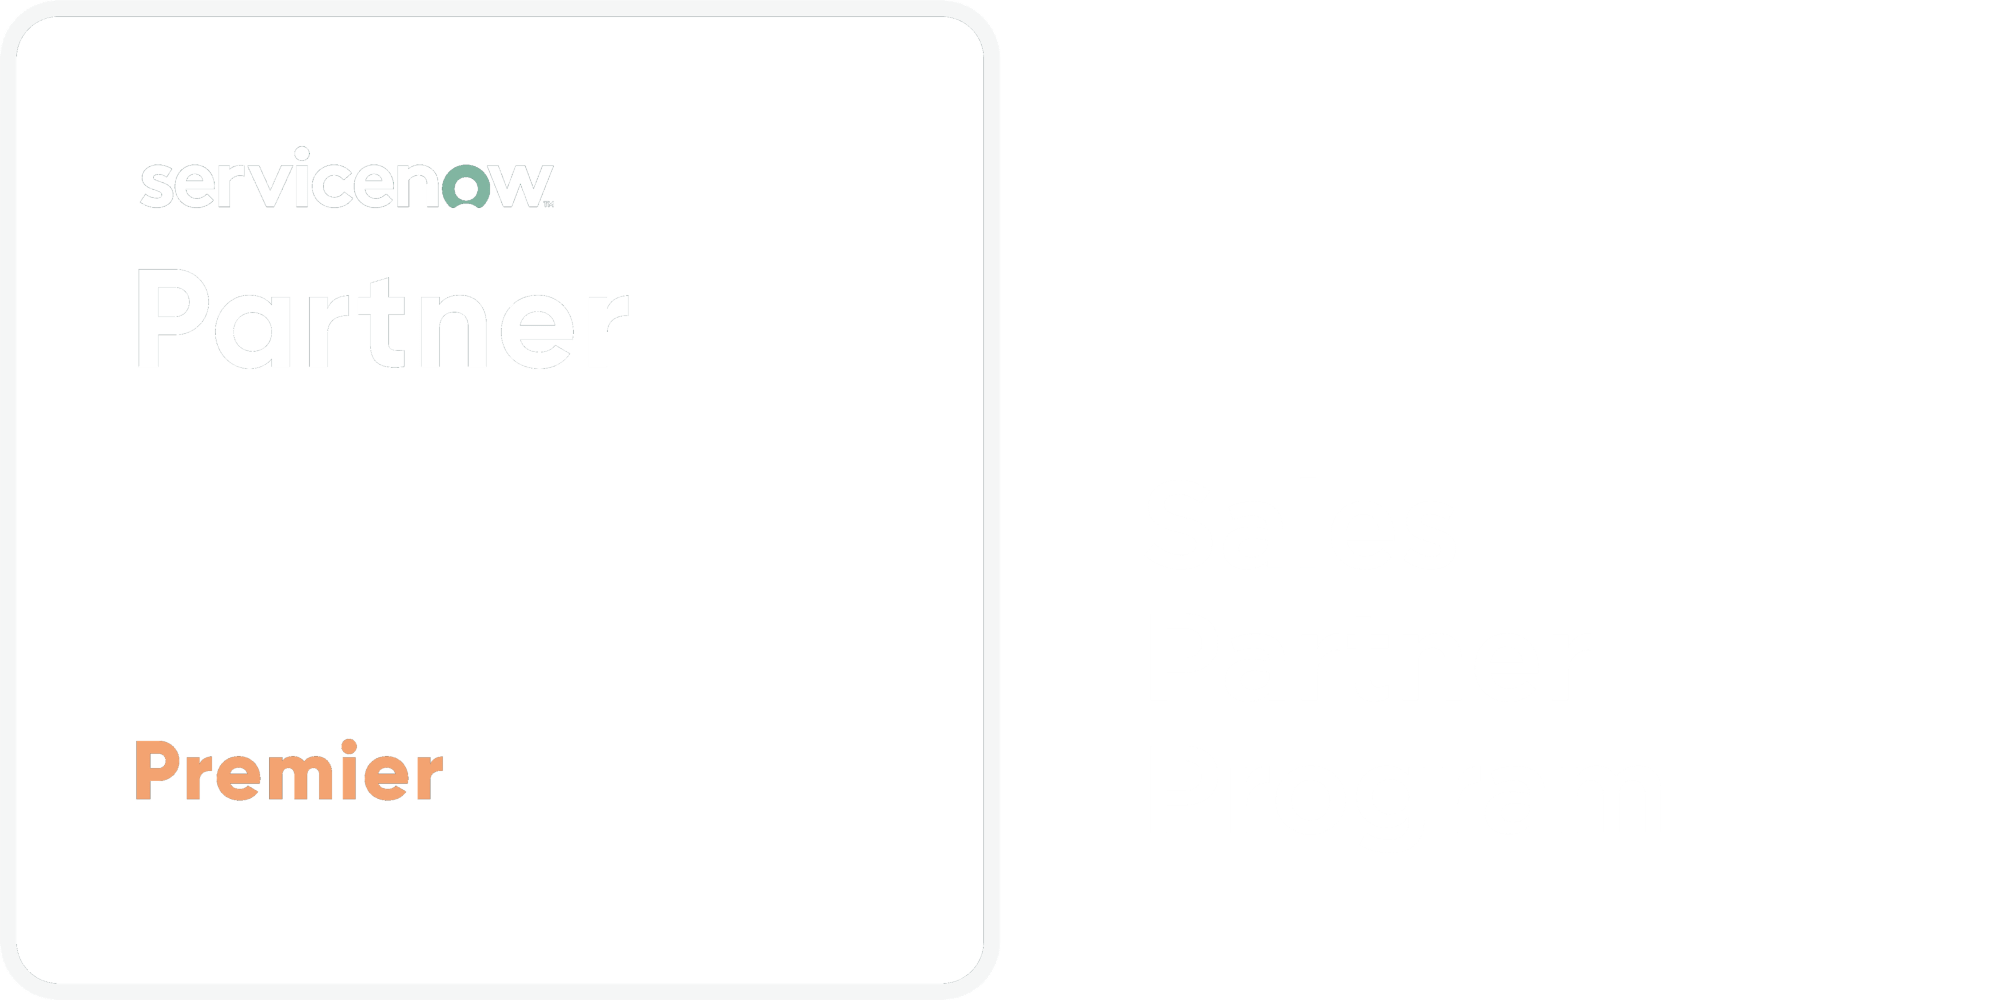 syscovery Solve & Serve is ServiceNow Premier Sales Partner